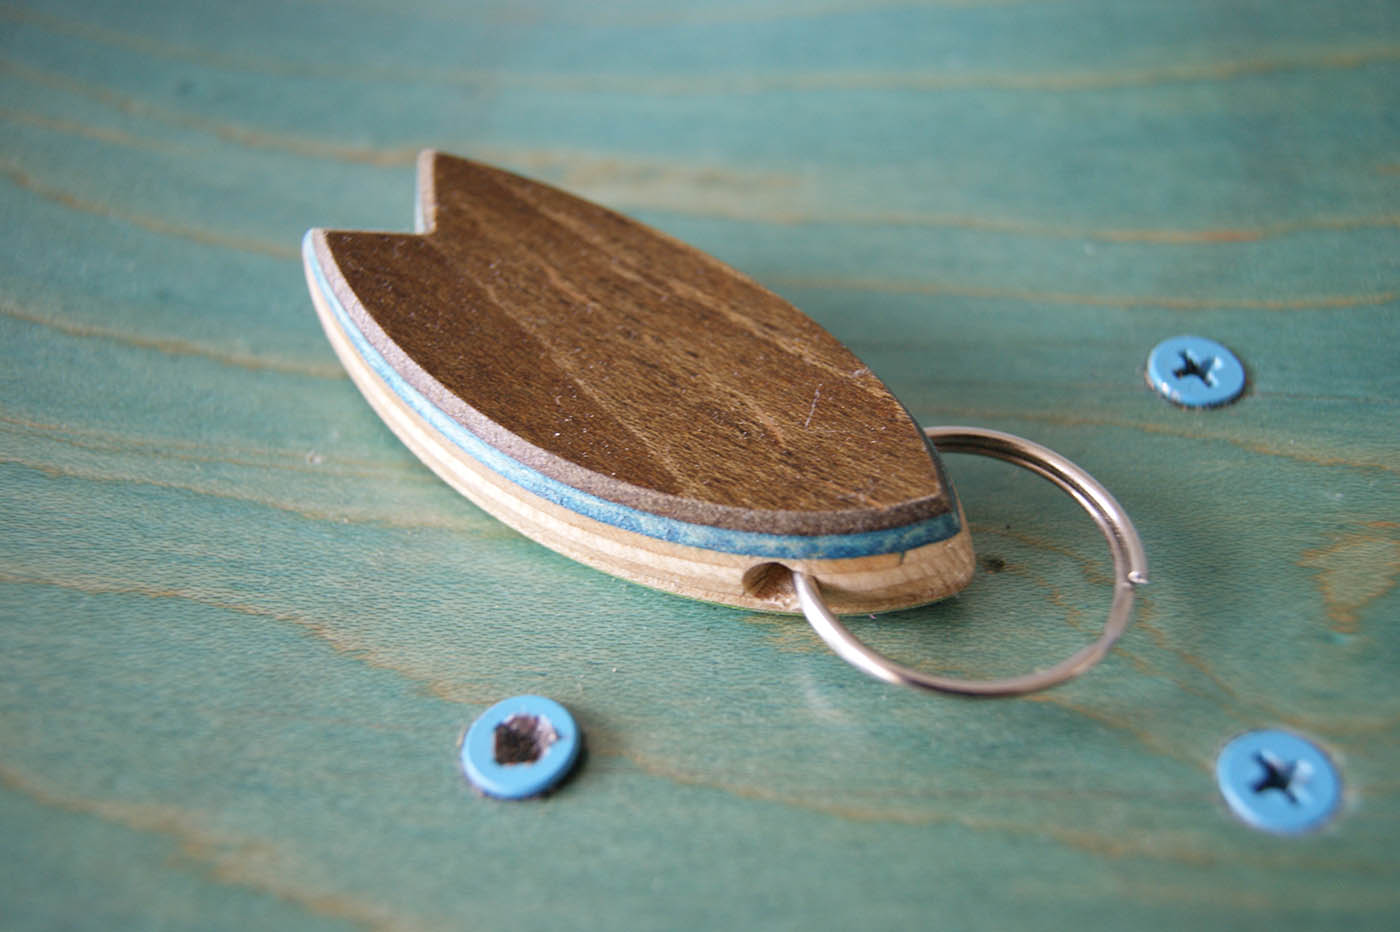 4-Skatan-LLC-Surfboard-Key-Chain-Skateboarding-Upcycling (91)